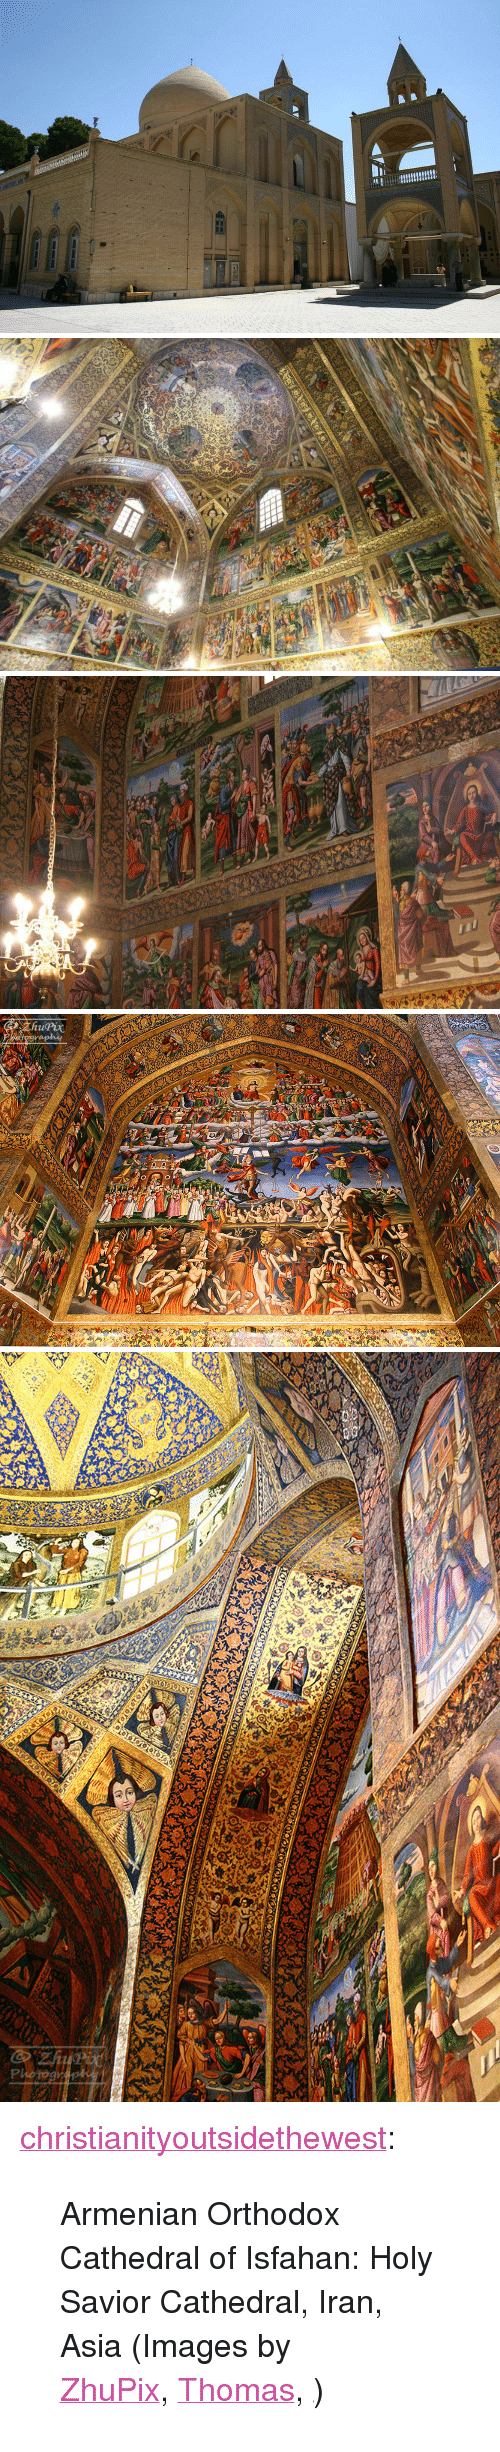 """Heaven, Tumblr, and Blog: <p><a class=""""tumblr_blog"""" href=""""http://christianityoutsidethewest.tumblr.com/post/140347645569"""">christianityoutsidethewest</a>:</p> <blockquote> <p>Armenian Orthodox Cathedral of Isfahan:Holy Savior Cathedral,Iran, Asia (Images by<a href=""""https://commons.wikimedia.org/wiki/File:Heaven_and_Hell_fresco.jpg"""">ZhuPix</a>,<a href=""""https://www.flickr.com/photos/t_p_s/albums/72157617513965334"""">Thomas</a>,<a href=""""https://www.flickr.com/photos/32677075@N00/2937446175"""">六龍幻天</a>)</p> </blockquote>"""